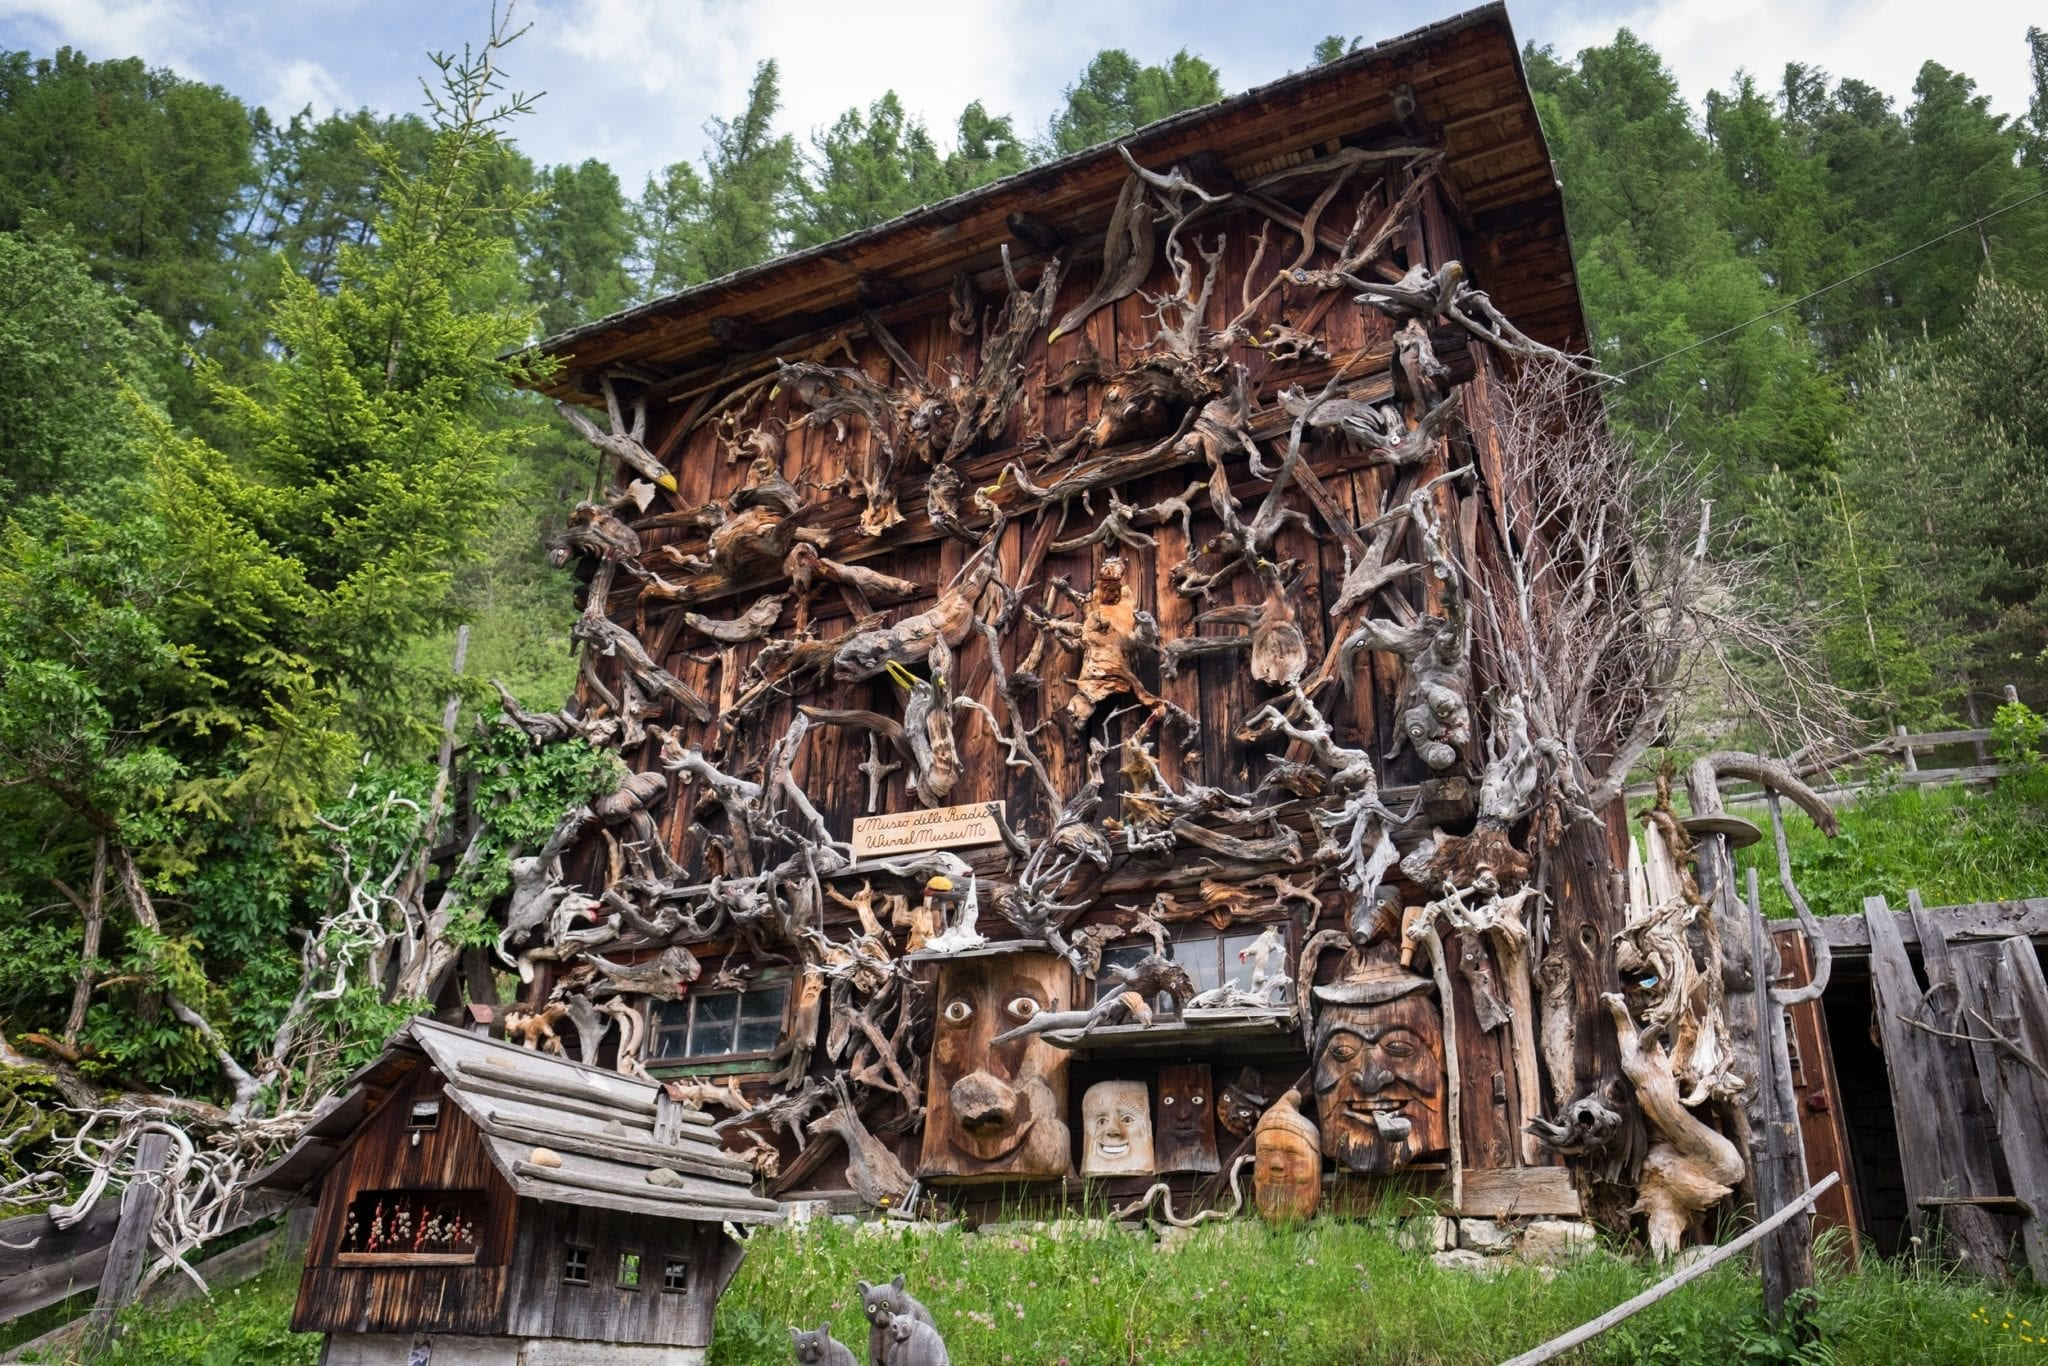 A wooden home in the Dolomites is covered with hundreds of wooden cutouts made from found pieces of wood.